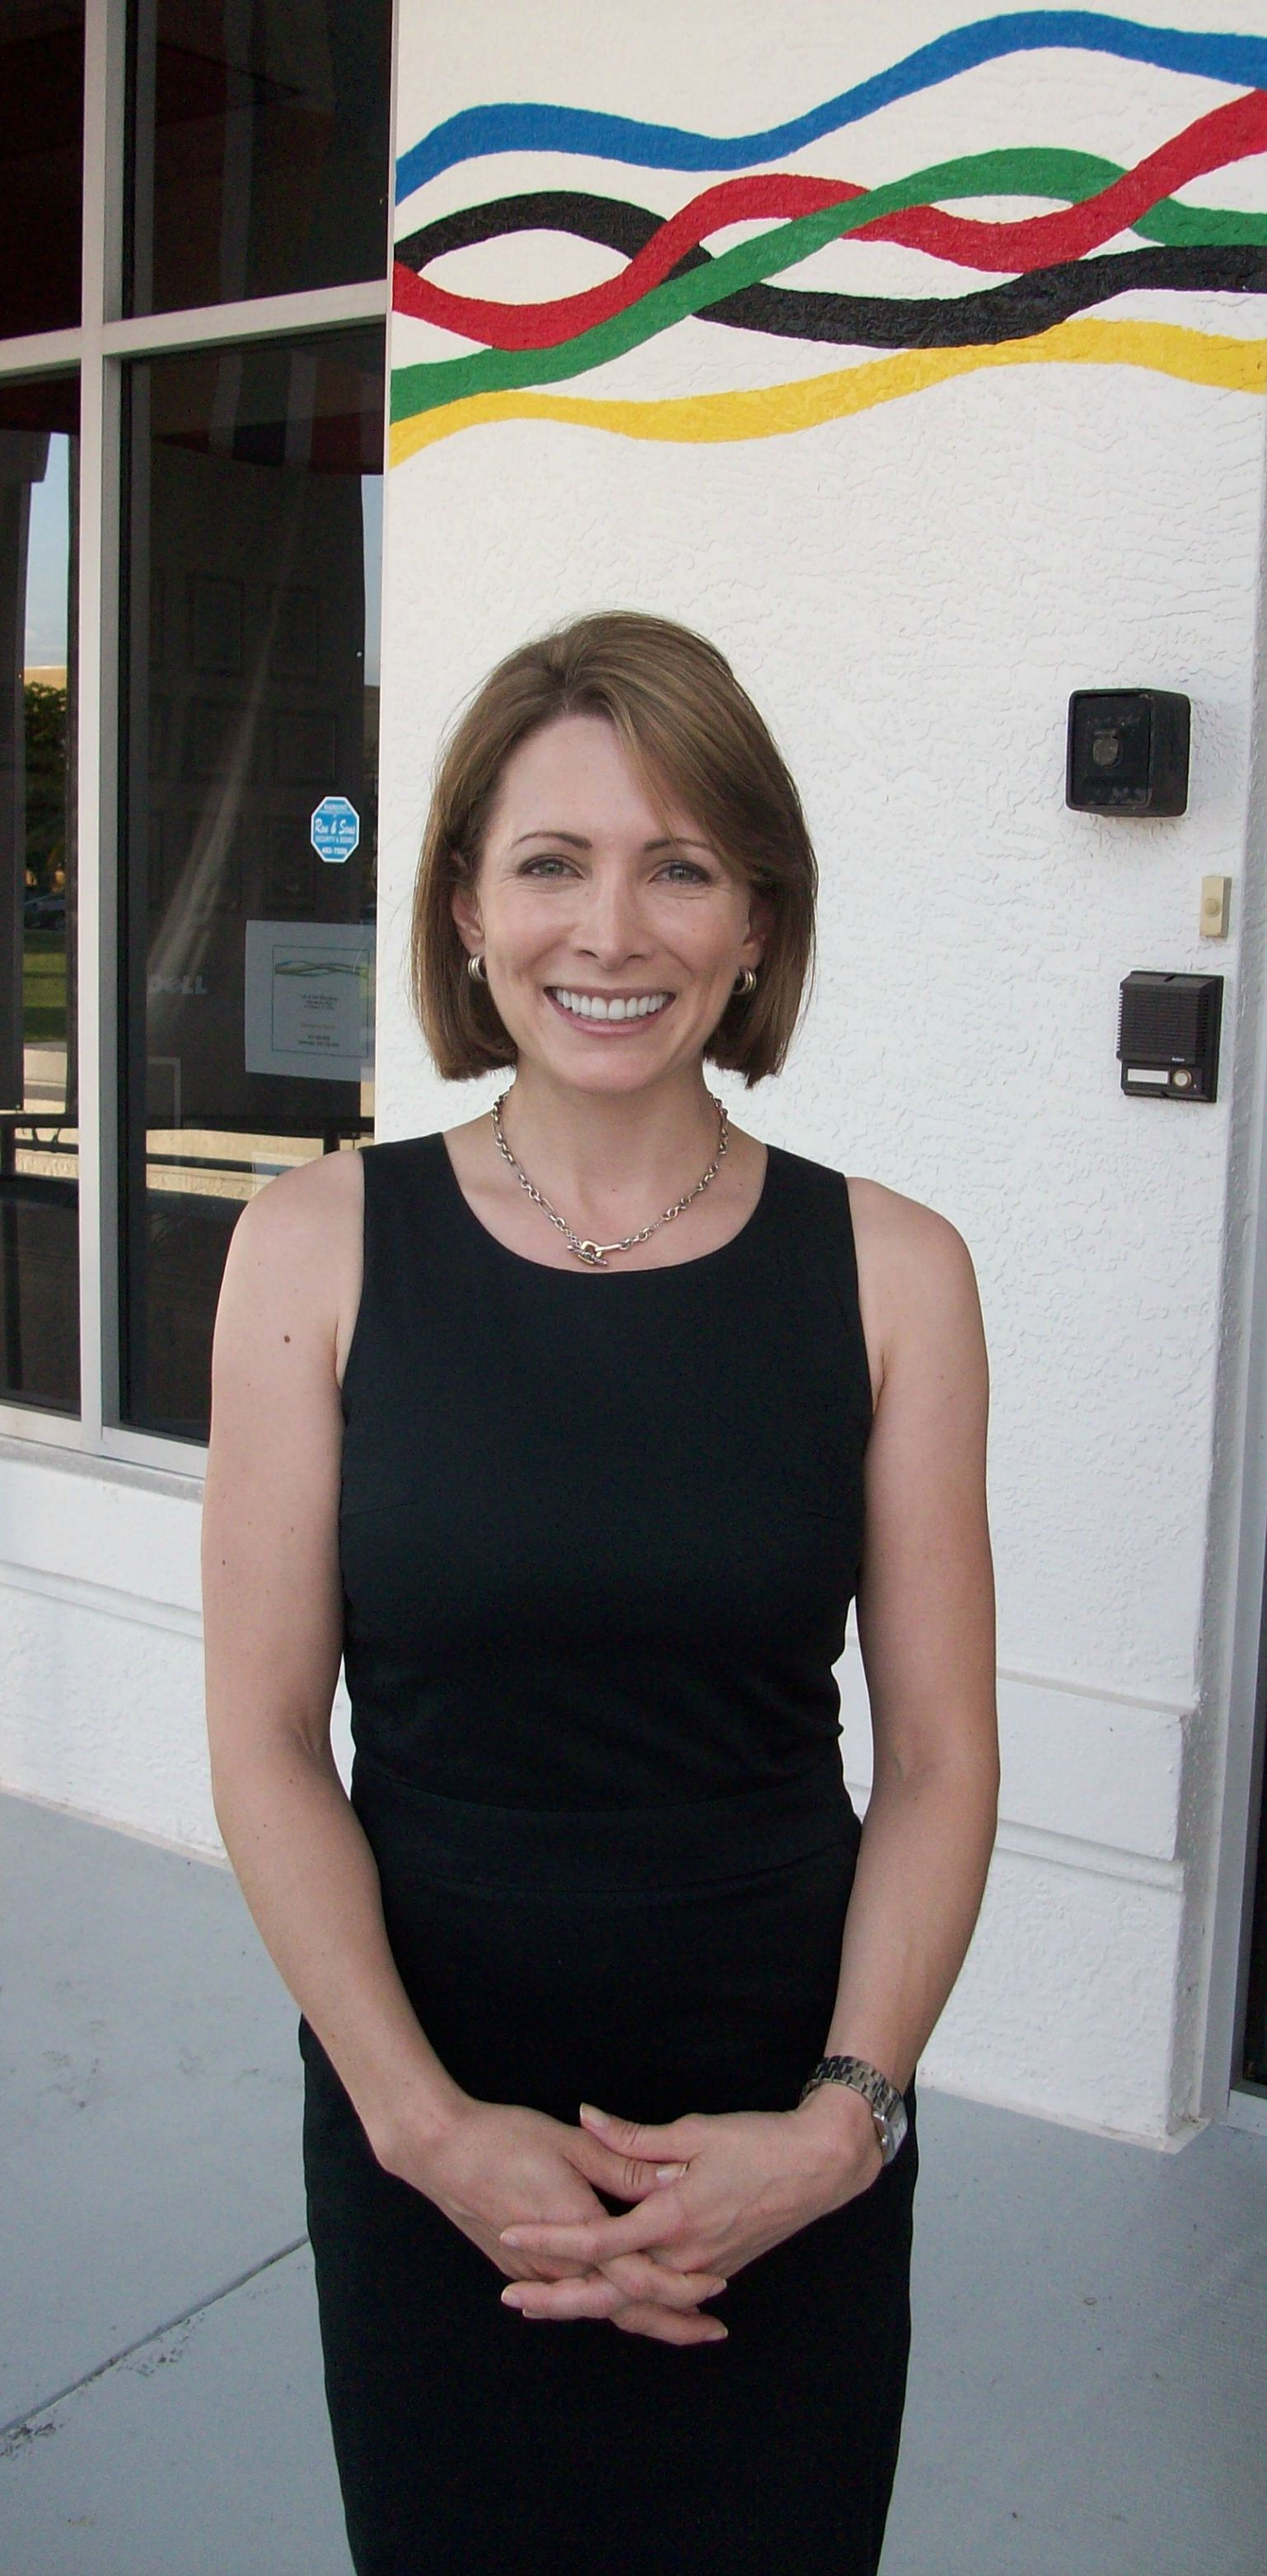 Photo of Shannon Miller: American gymnast